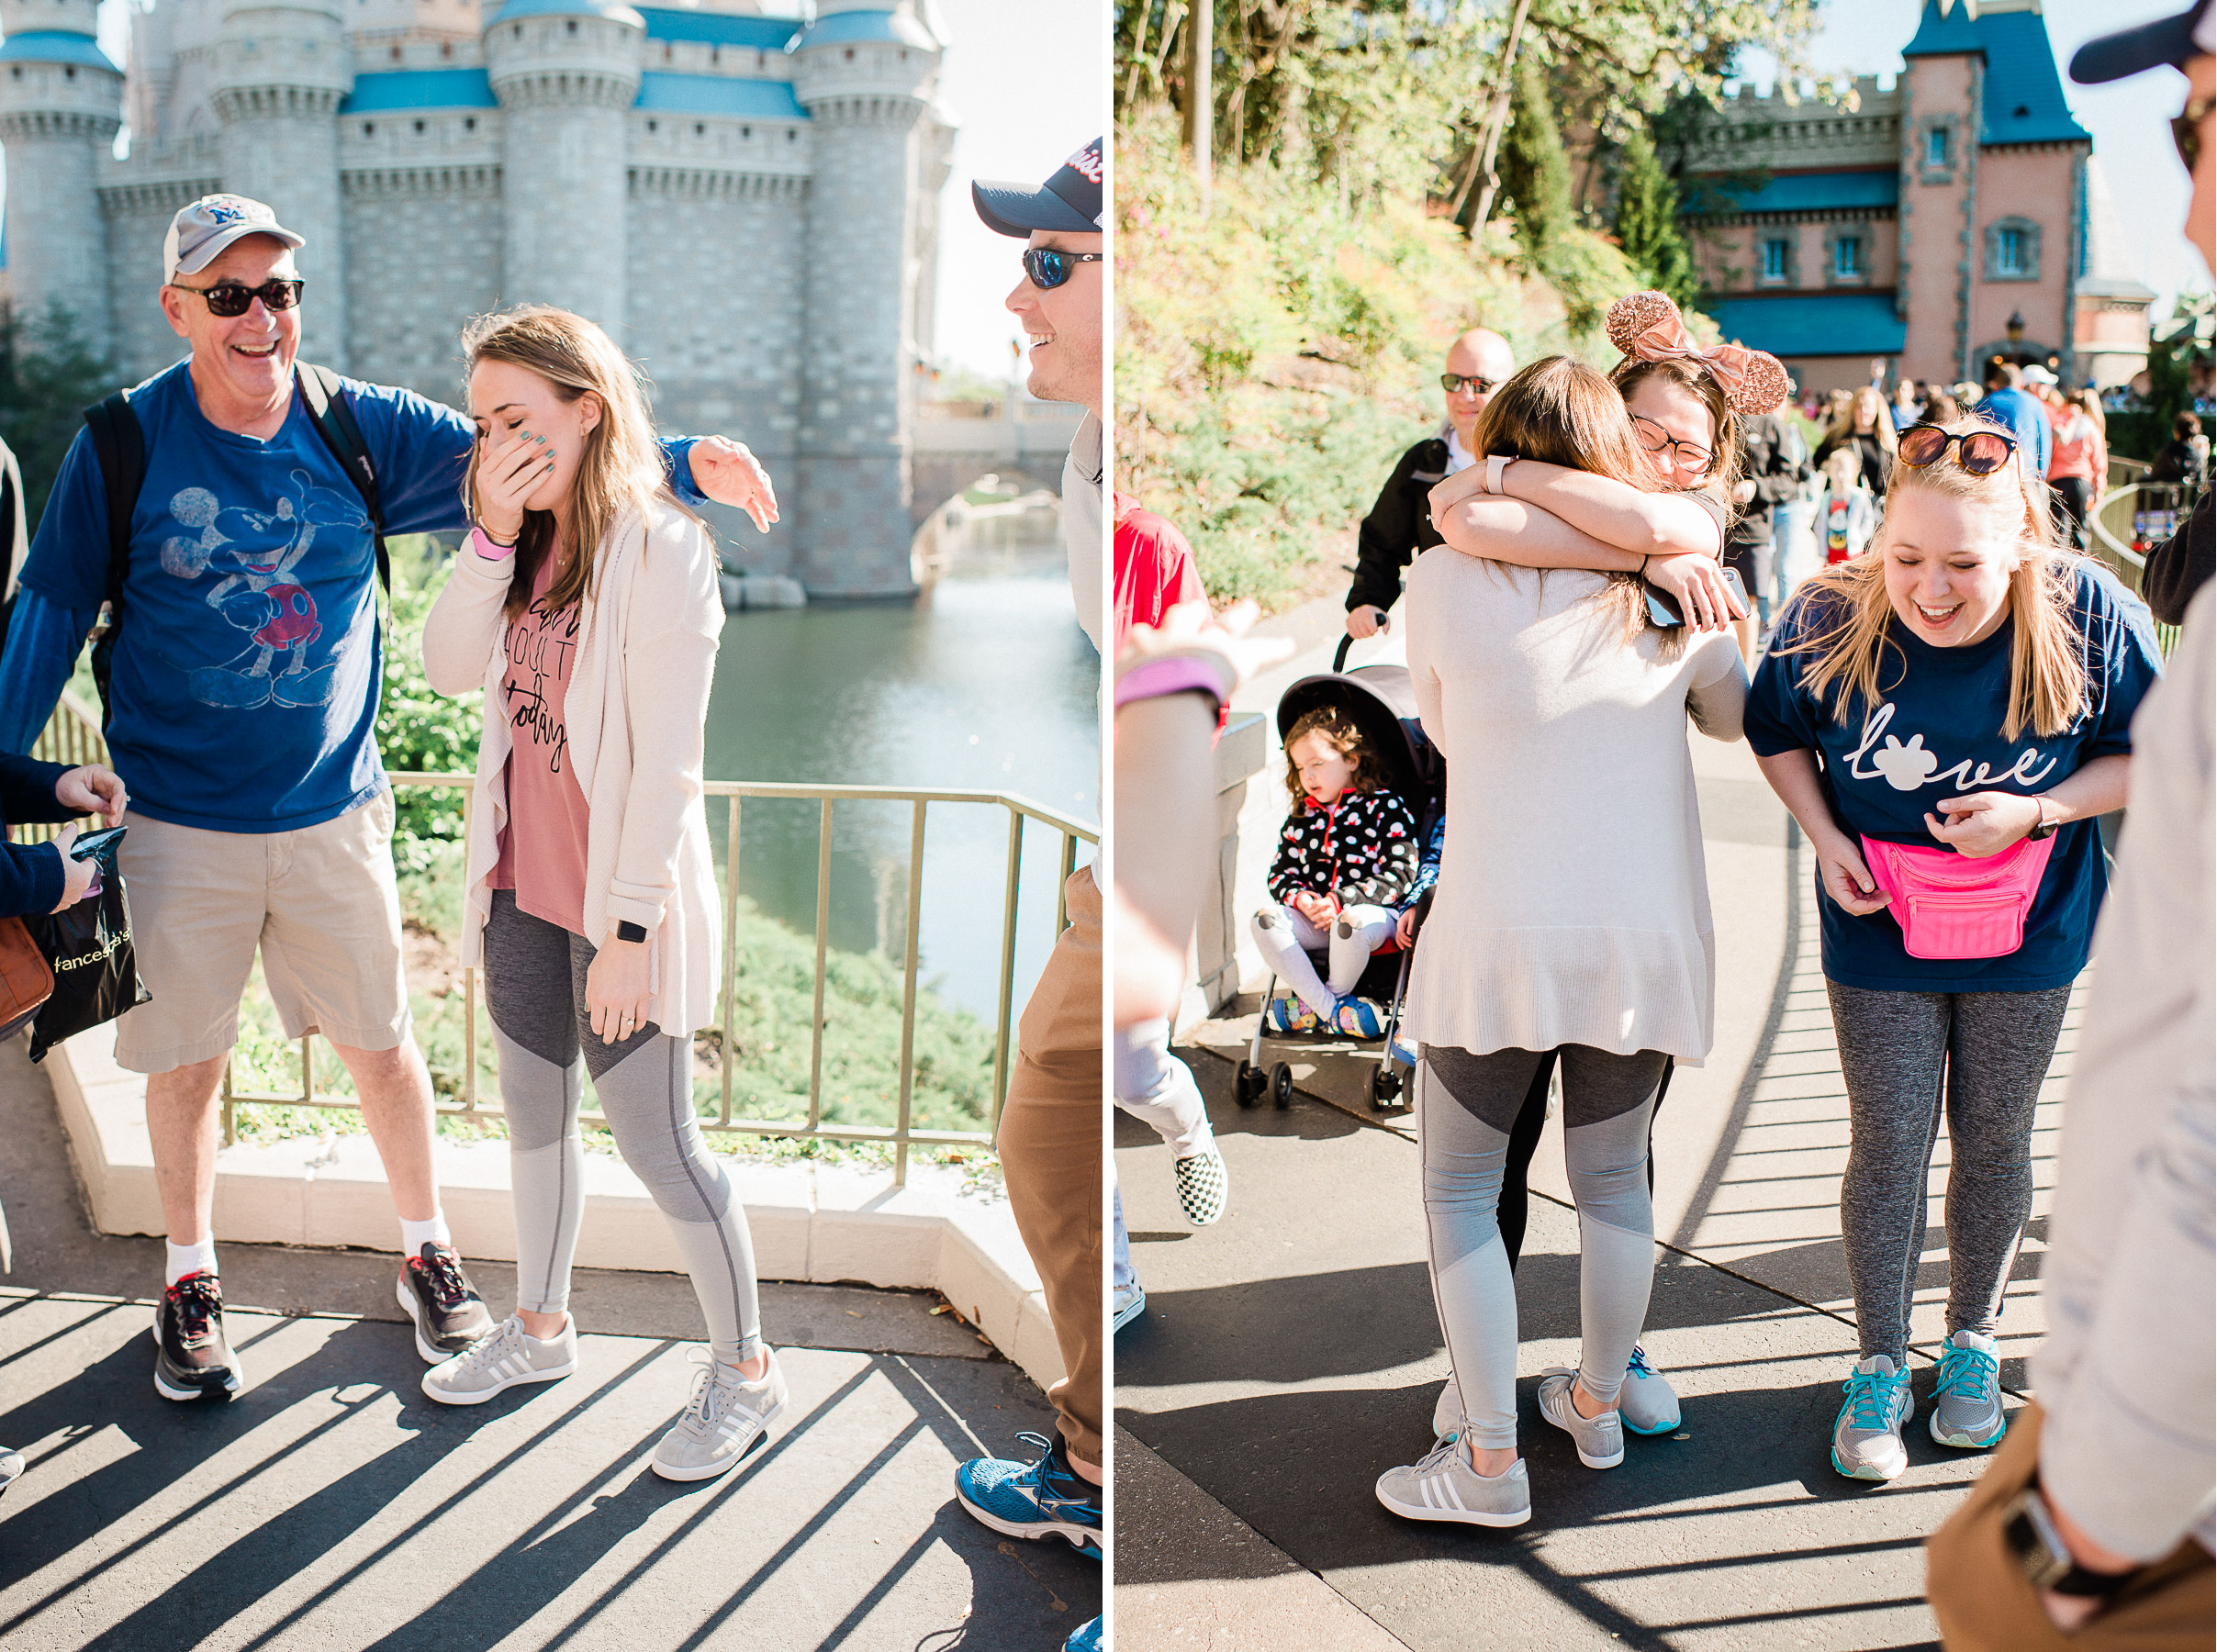 KateTaramykinStudios-Disney-World-Proposal-Kup-15.jpg